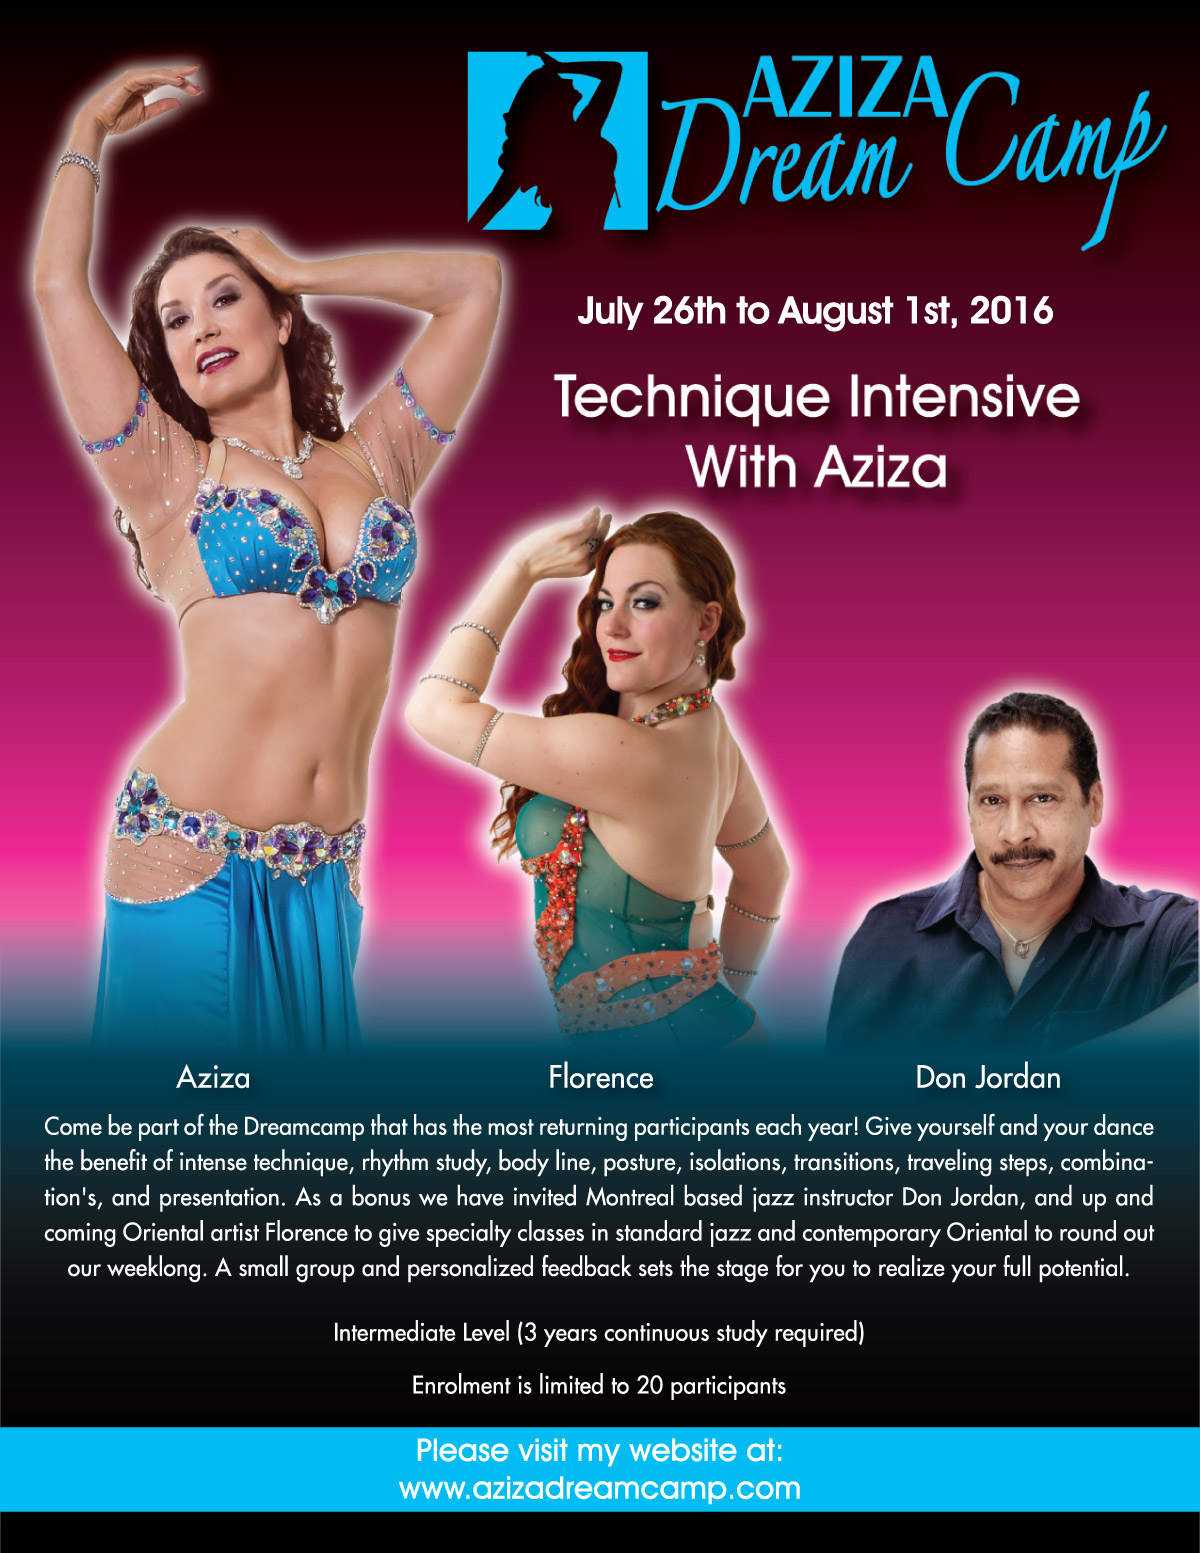 belly dance retreat aziza dreamcamp july 2016